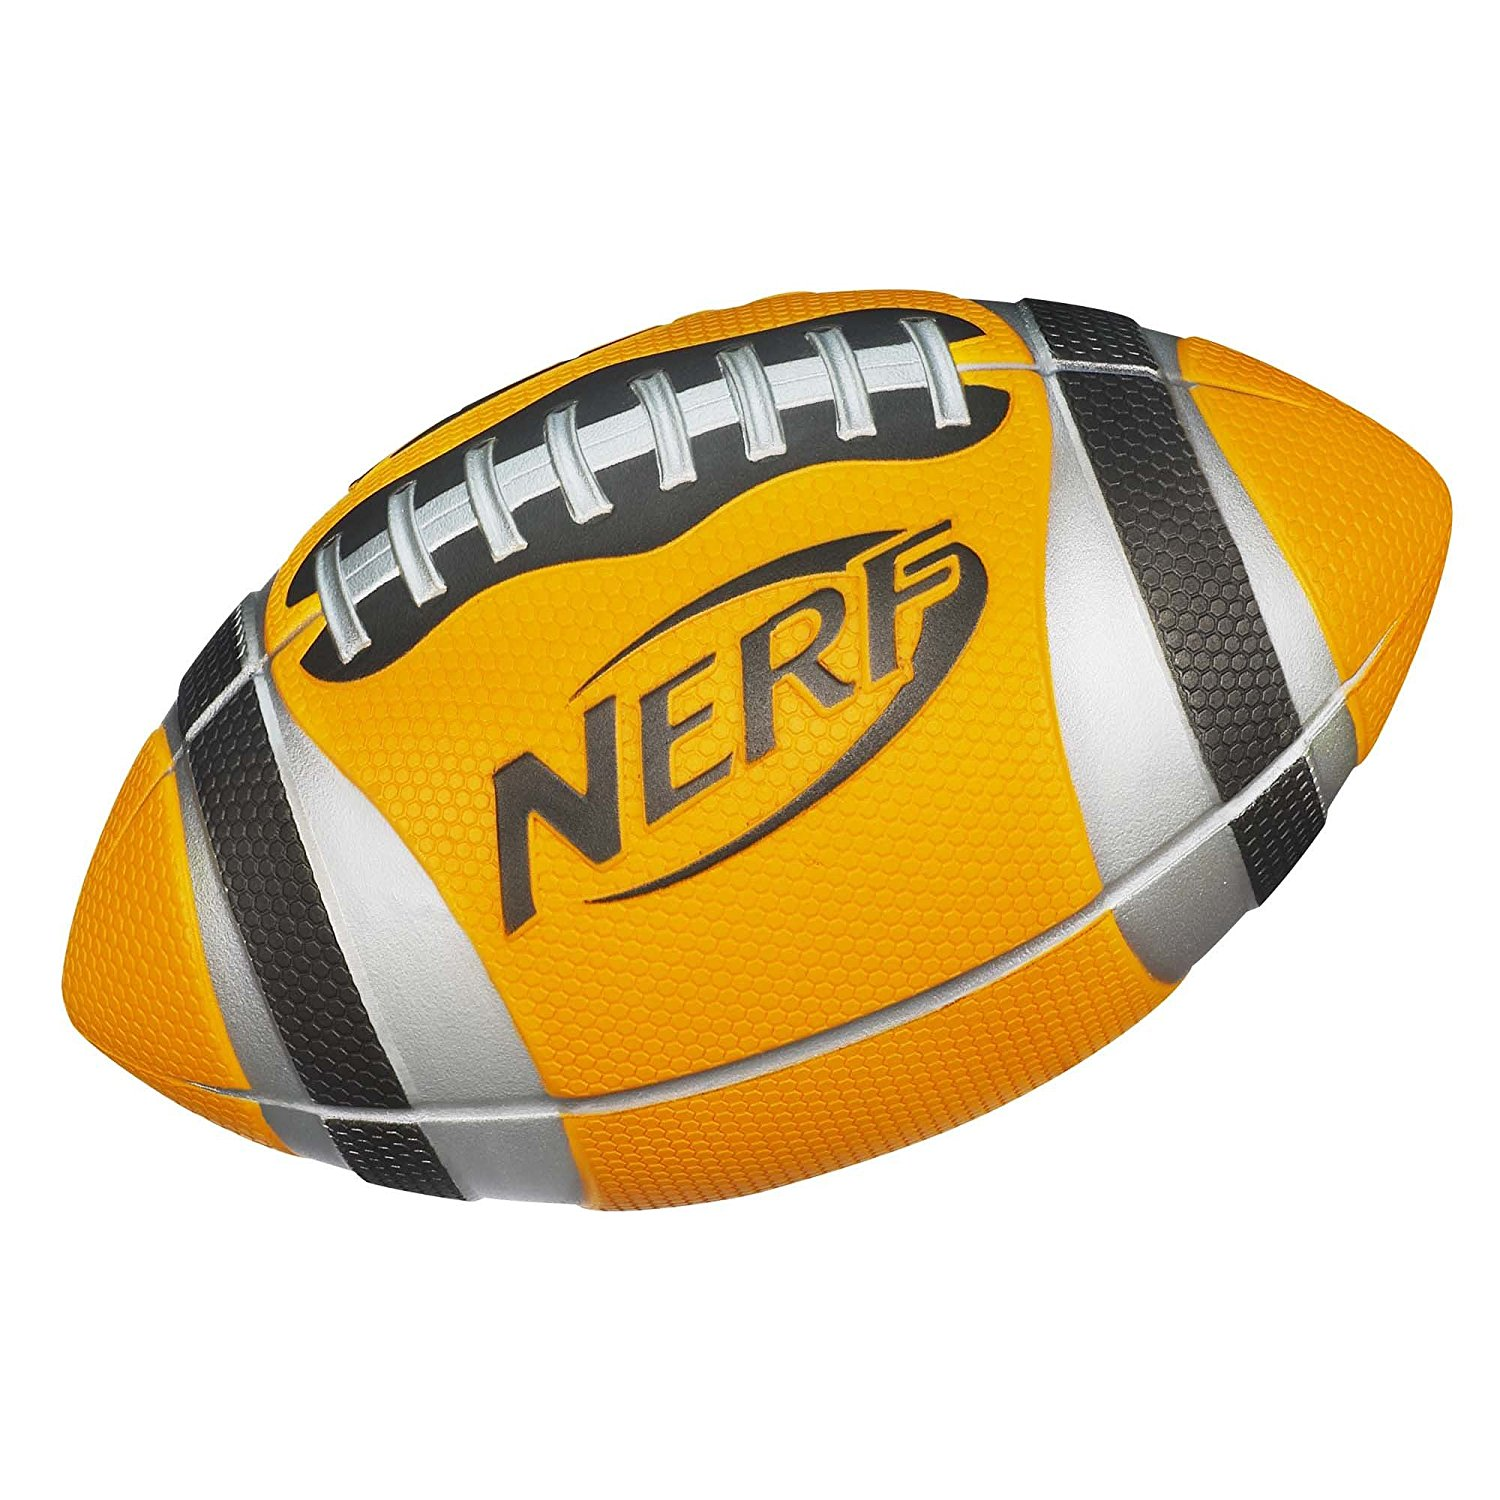 N-Sports Pro Grip Football Orange, Pro Grip football lets you throw like a pro By Nerf by